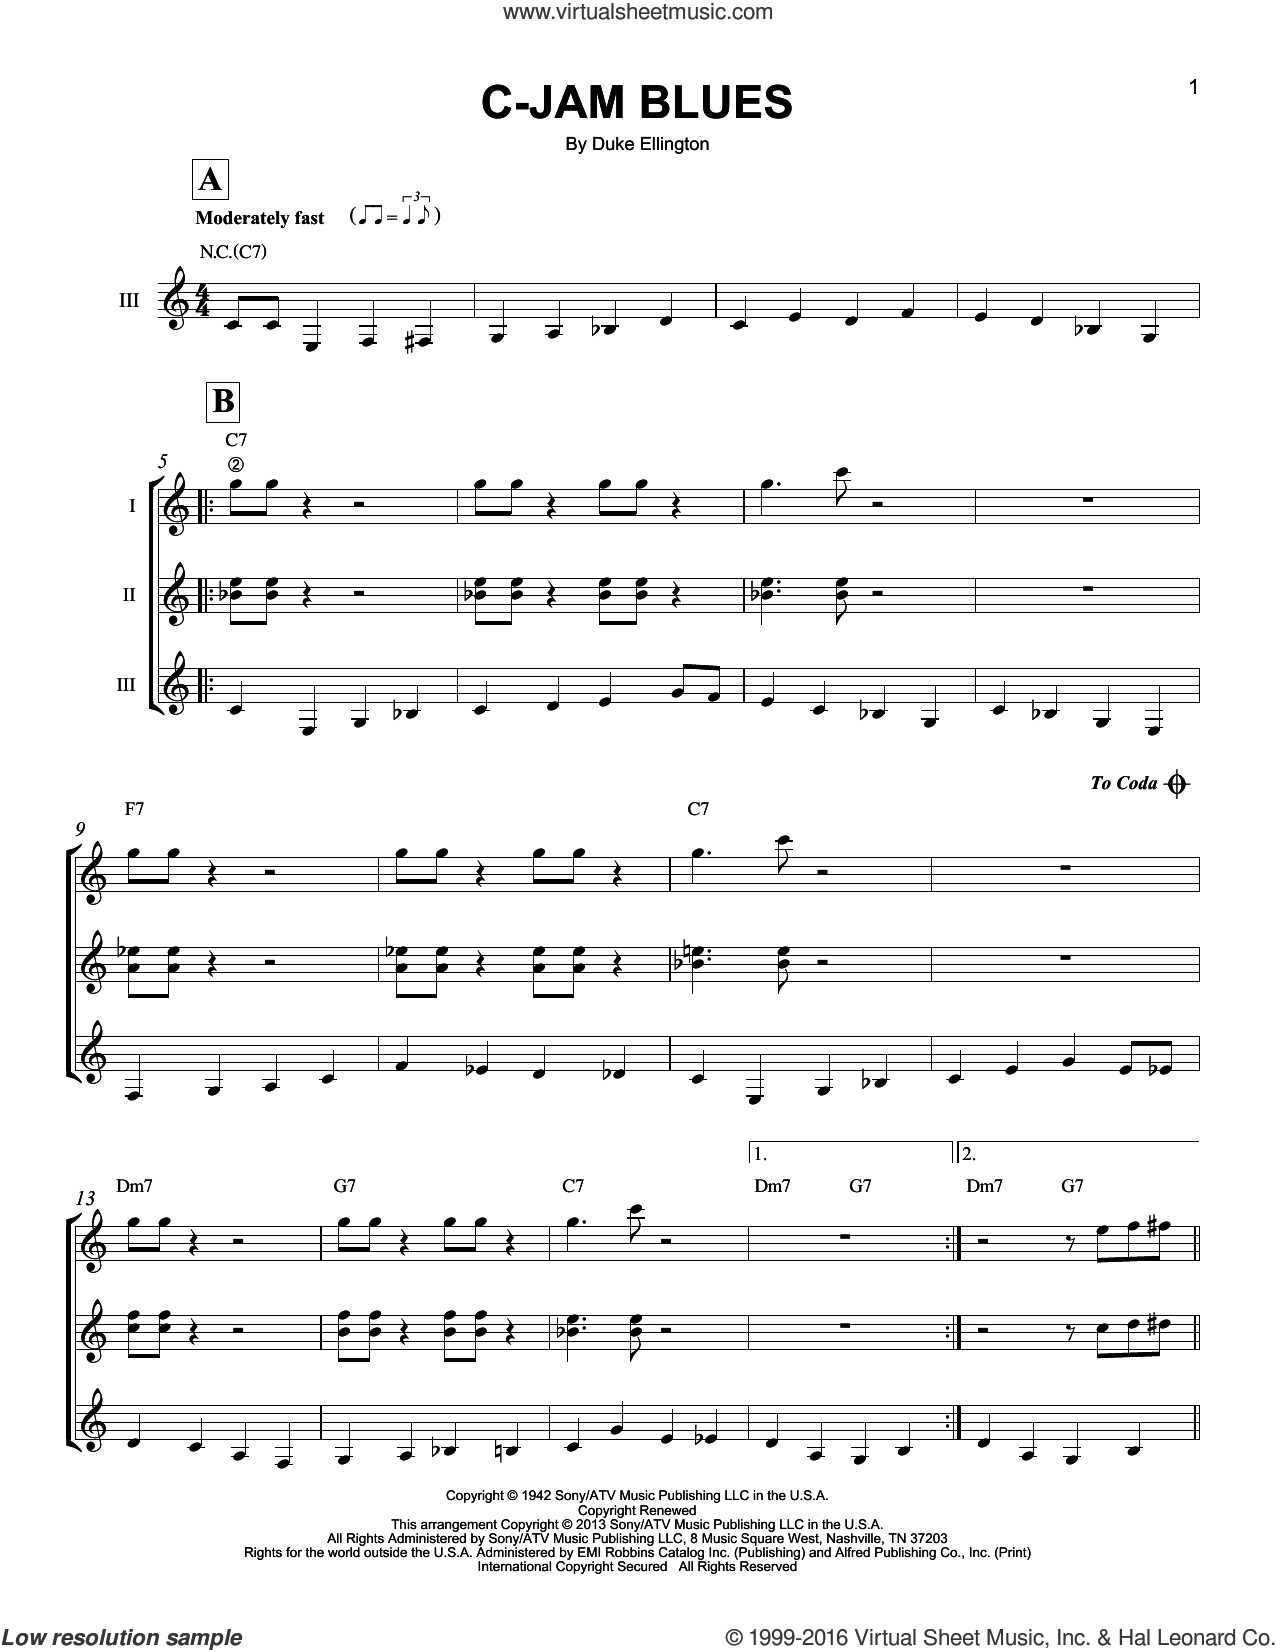 C-Jam Blues sheet music for guitar ensemble by Duke Ellington, intermediate